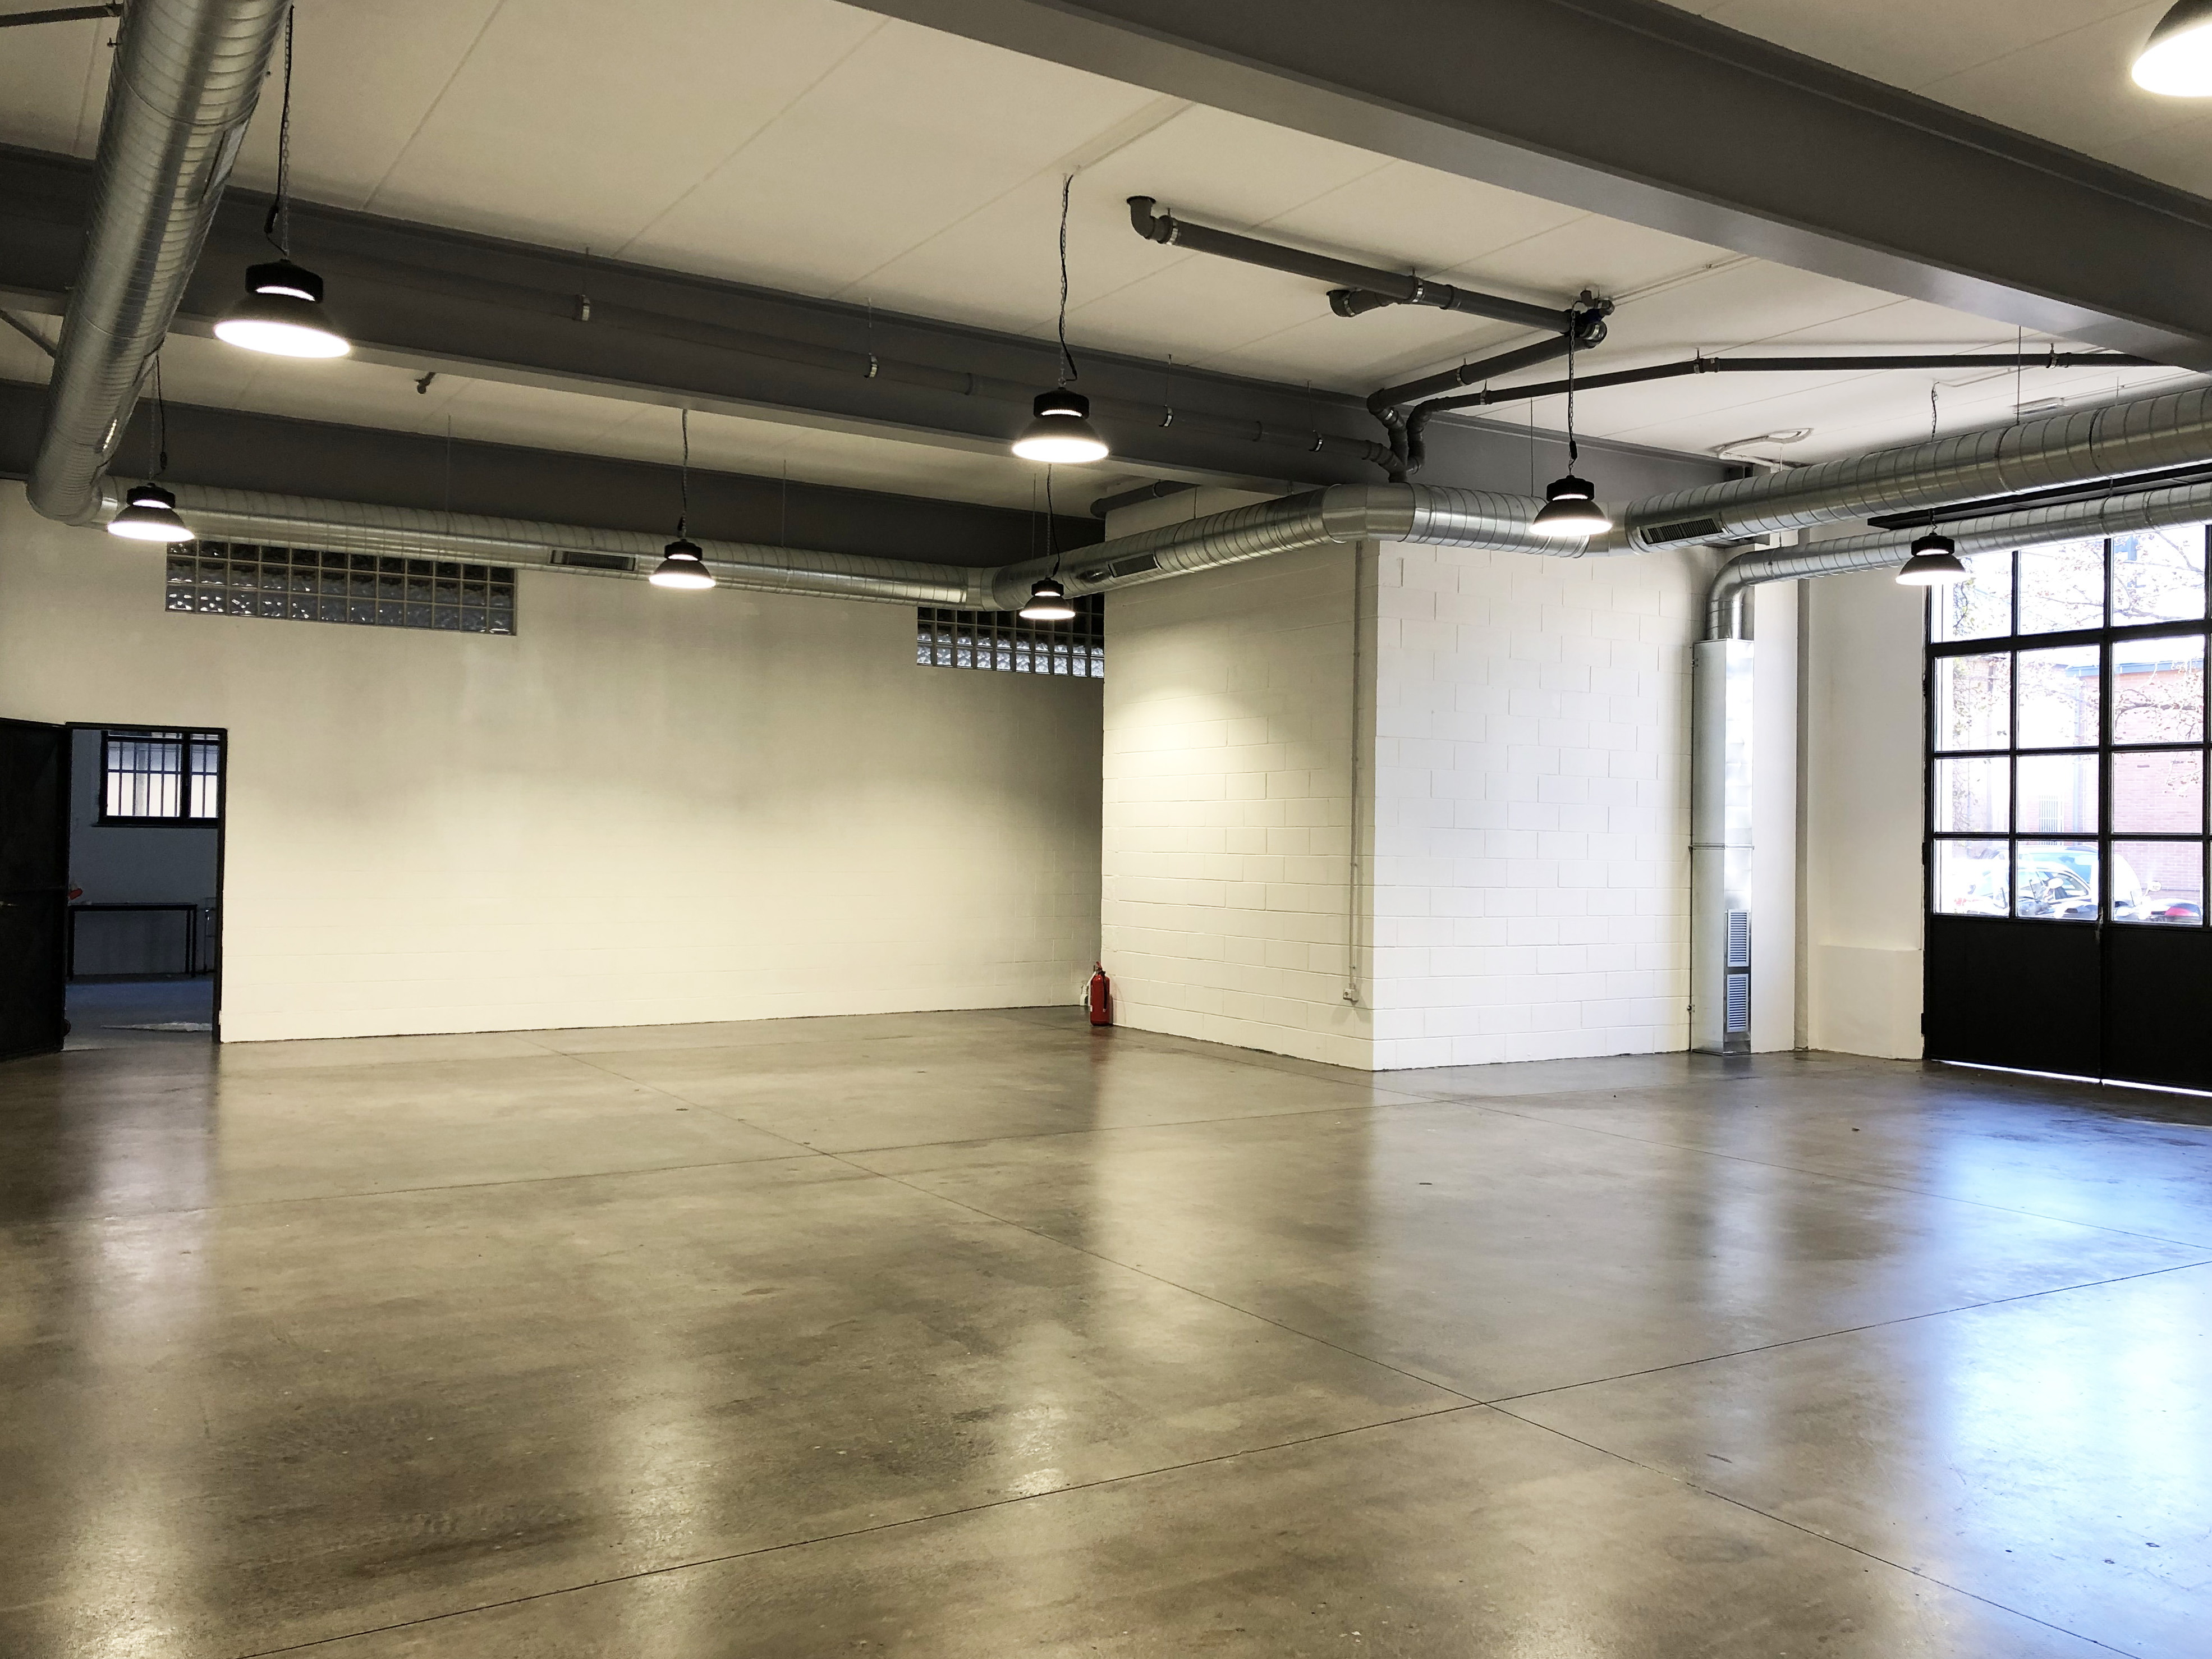 Officina3 - Open space, Spazio industriale di 200mq in Via Tortona 31  | location disallestita 8